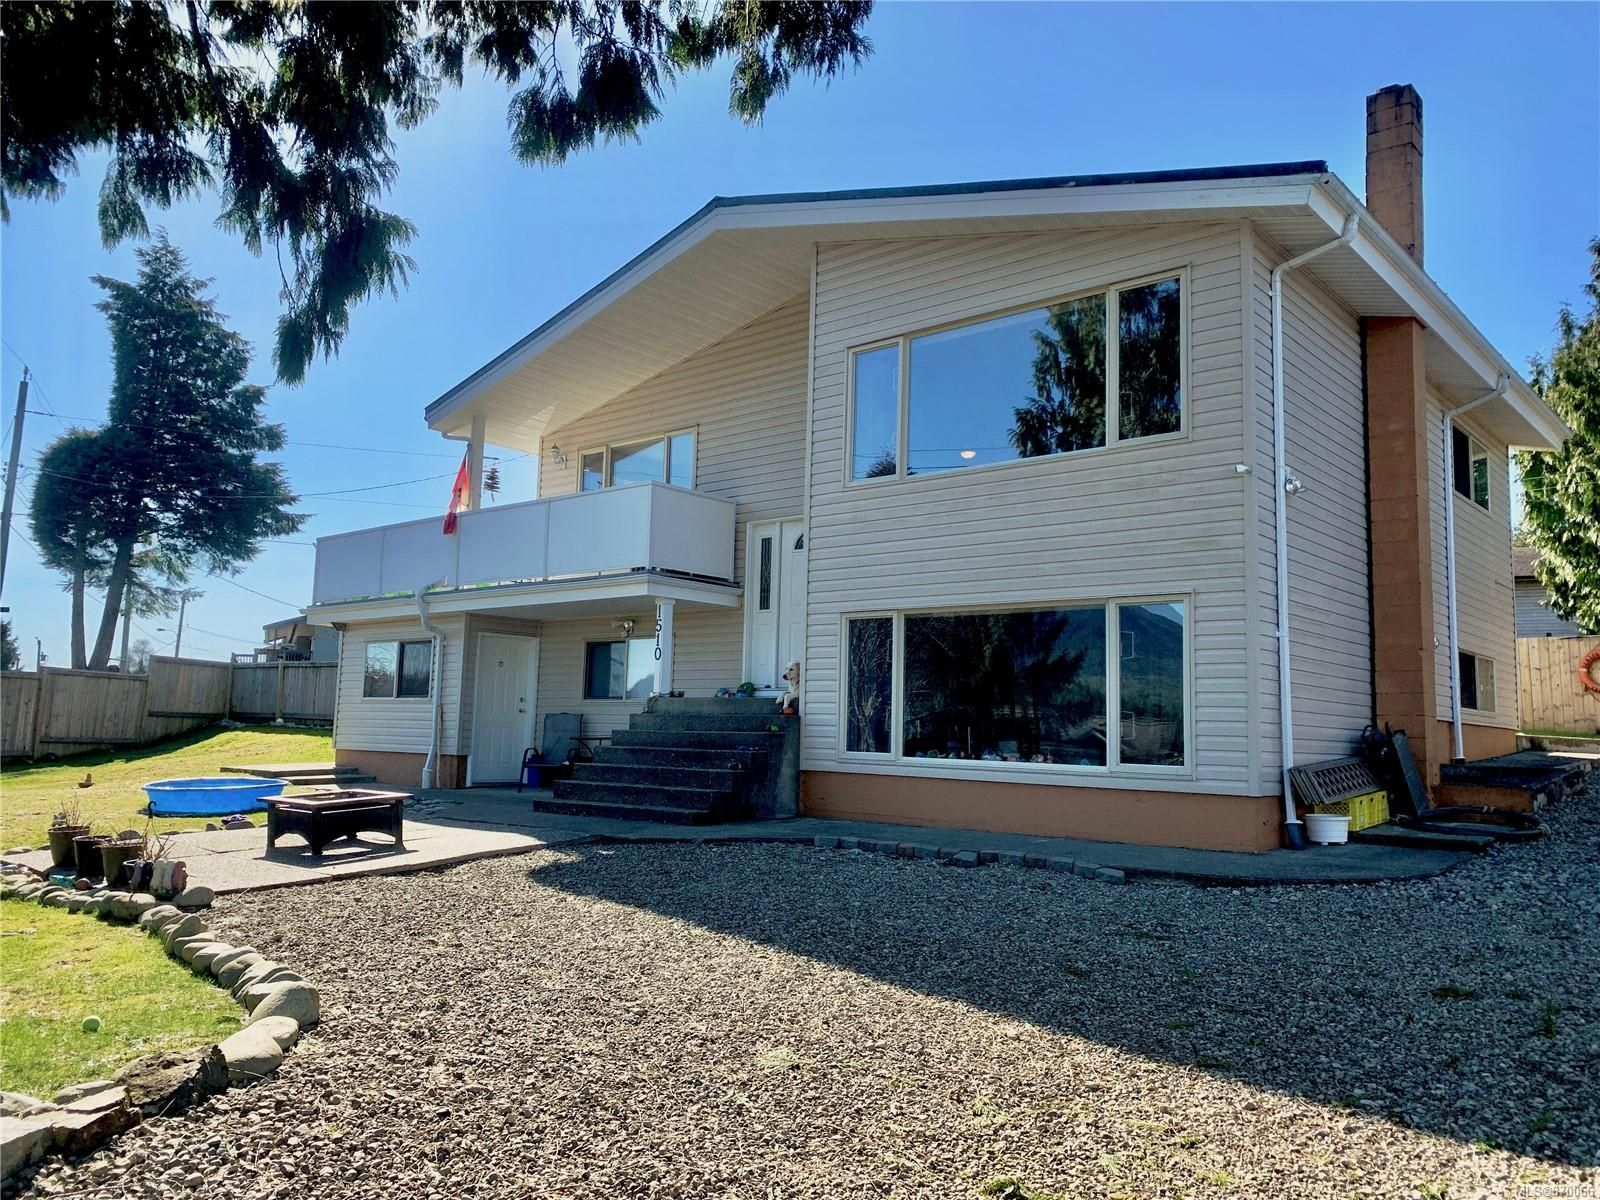 Main Photo: 1510 Helen Rd in : PA Ucluelet House for sale (Port Alberni)  : MLS®# 870066